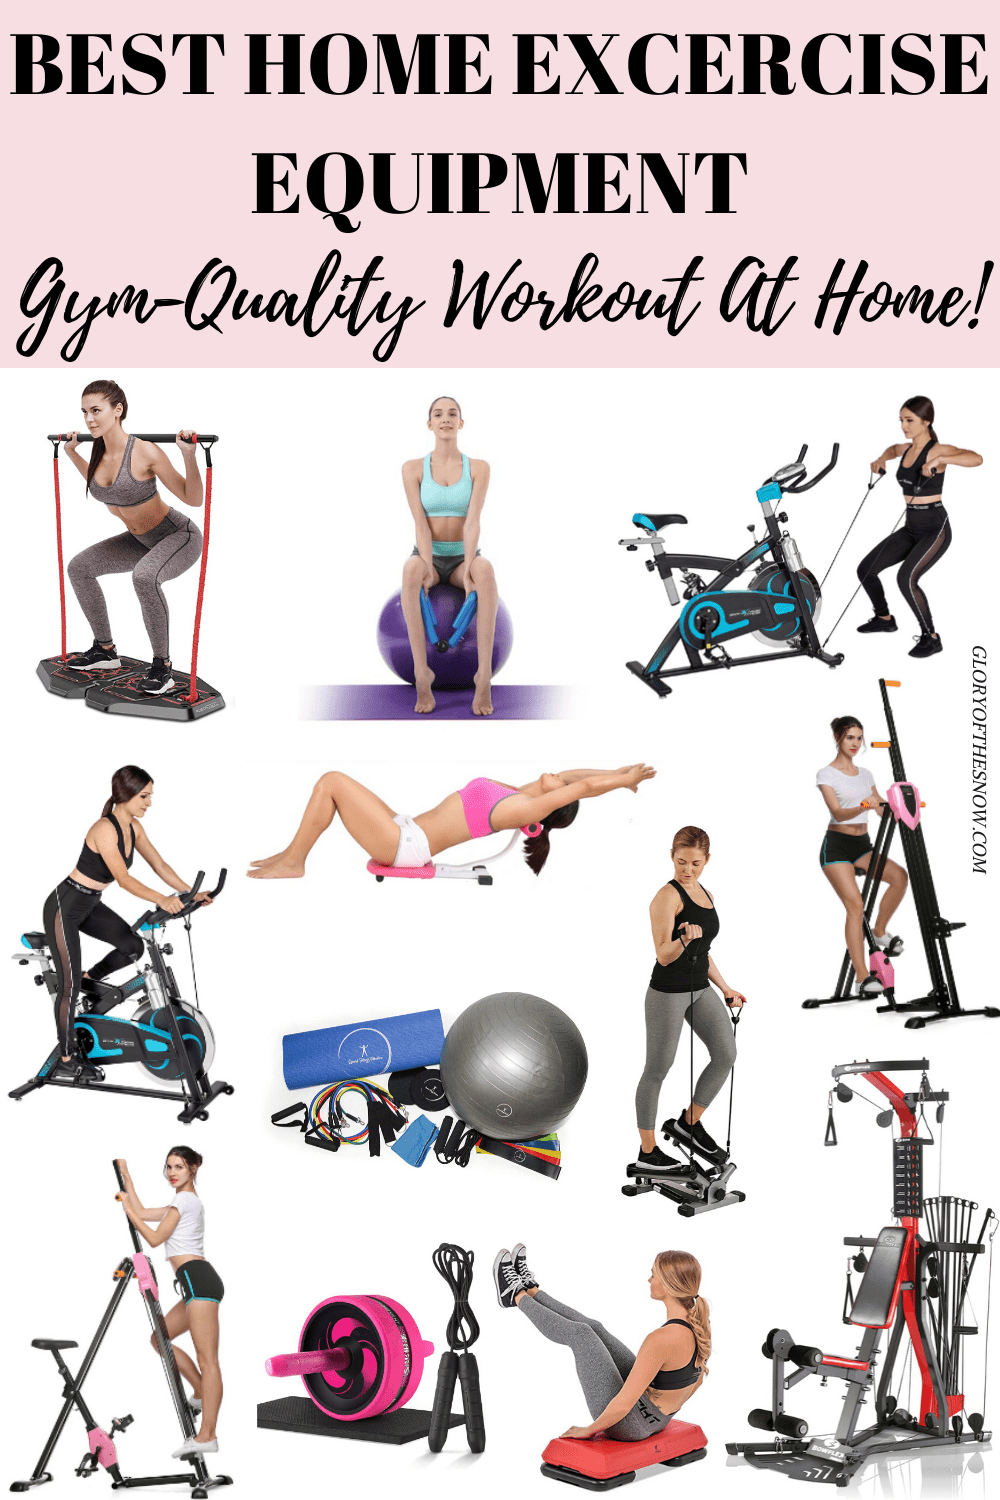 Best Home Exercise Equipment To Achieve Gym Quality Results | best home gym equipment | Best Home Ex...